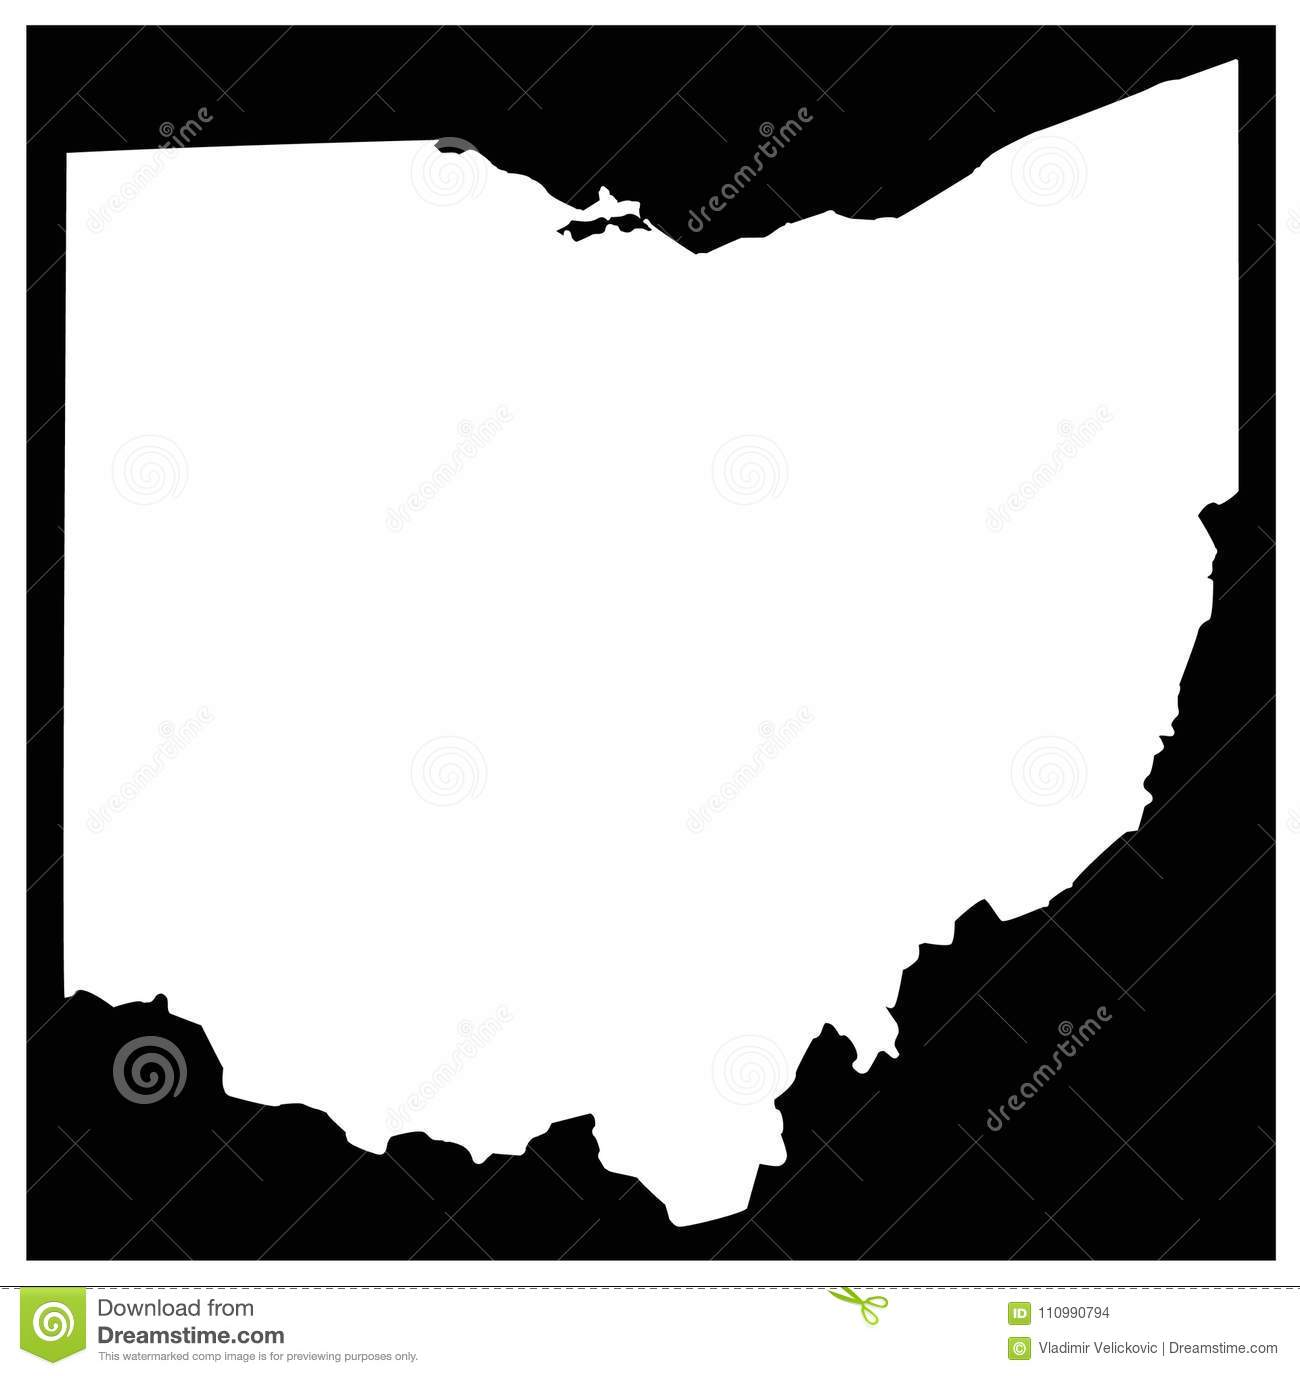 Ohio Map - Midwestern State In The Great Lakes Region Of The United ...